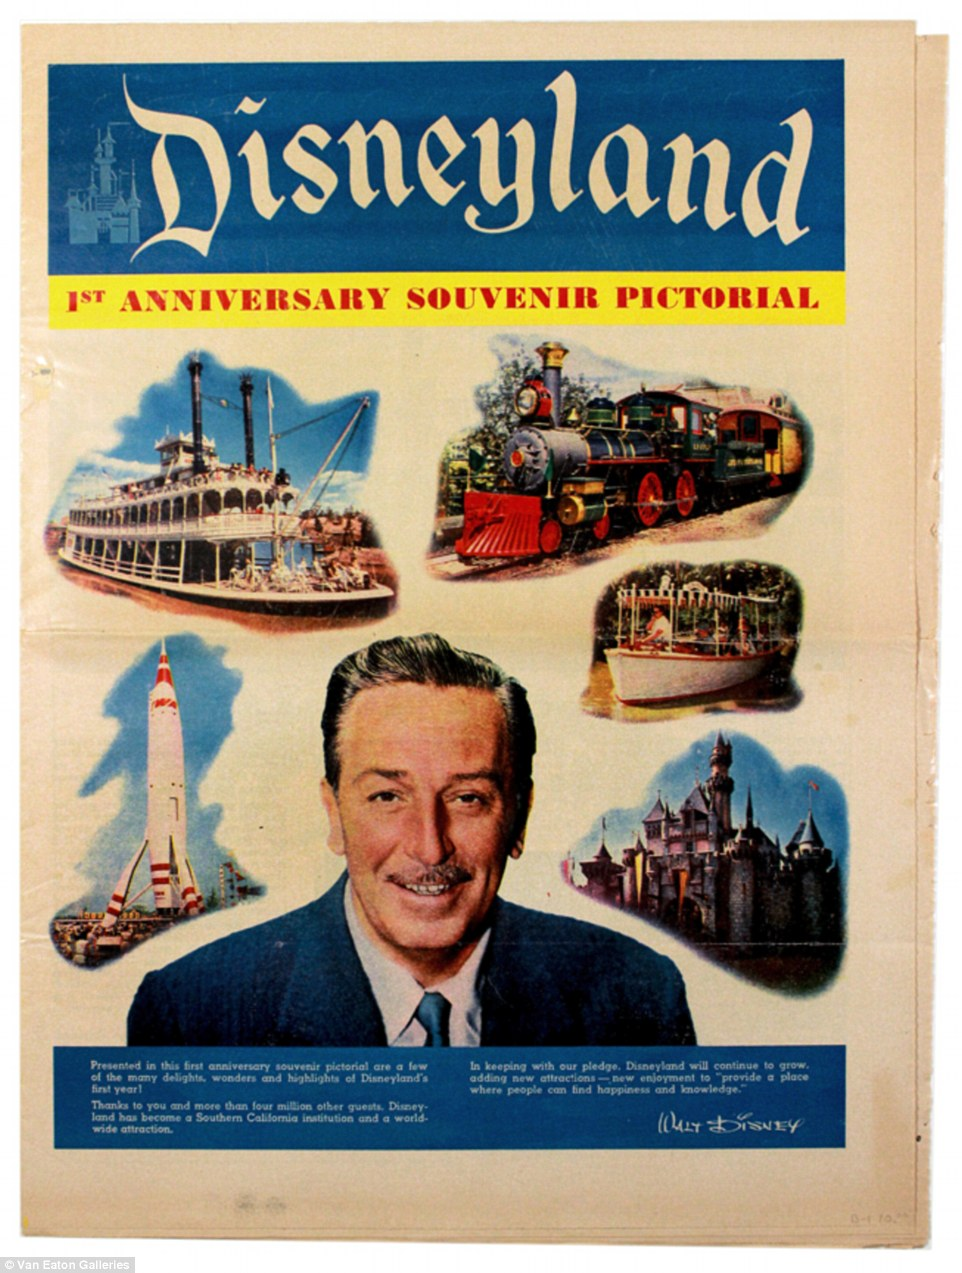 Auction Of Vintage Disneyland Memorabilia To Take Place